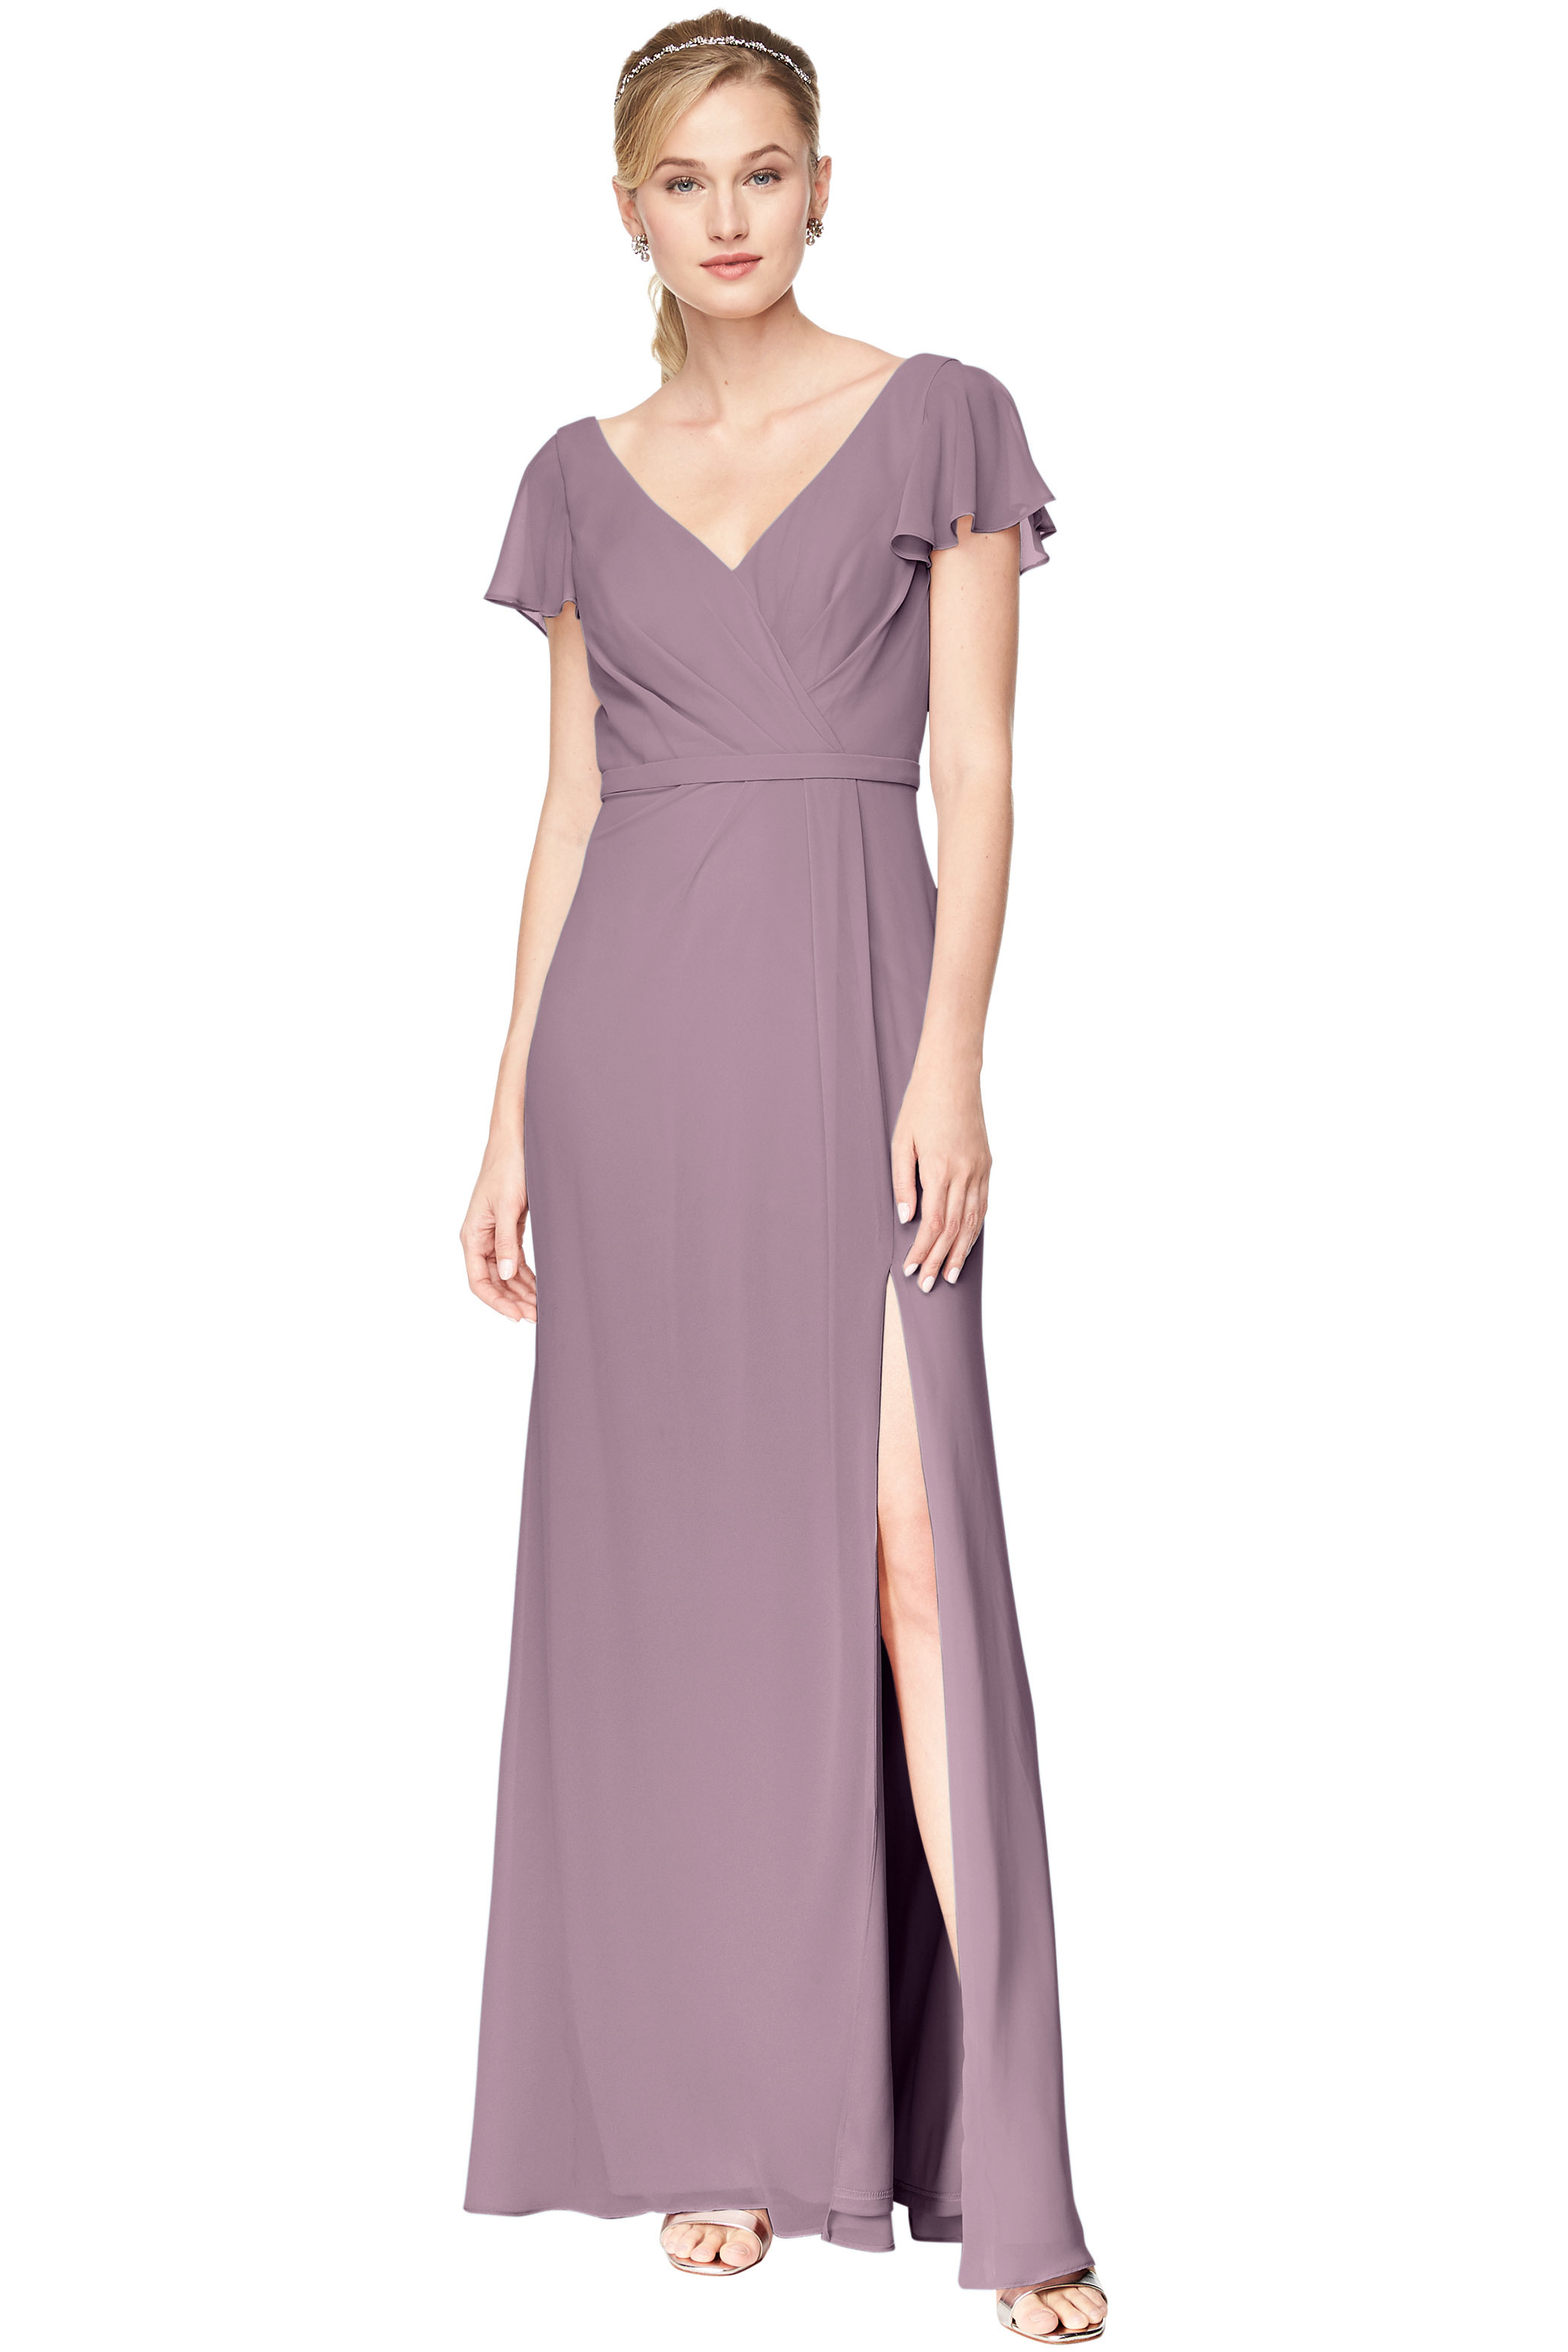 Bill Levkoff HEATHER Chiffon V-Neck A-Line gown, $184.00 Front